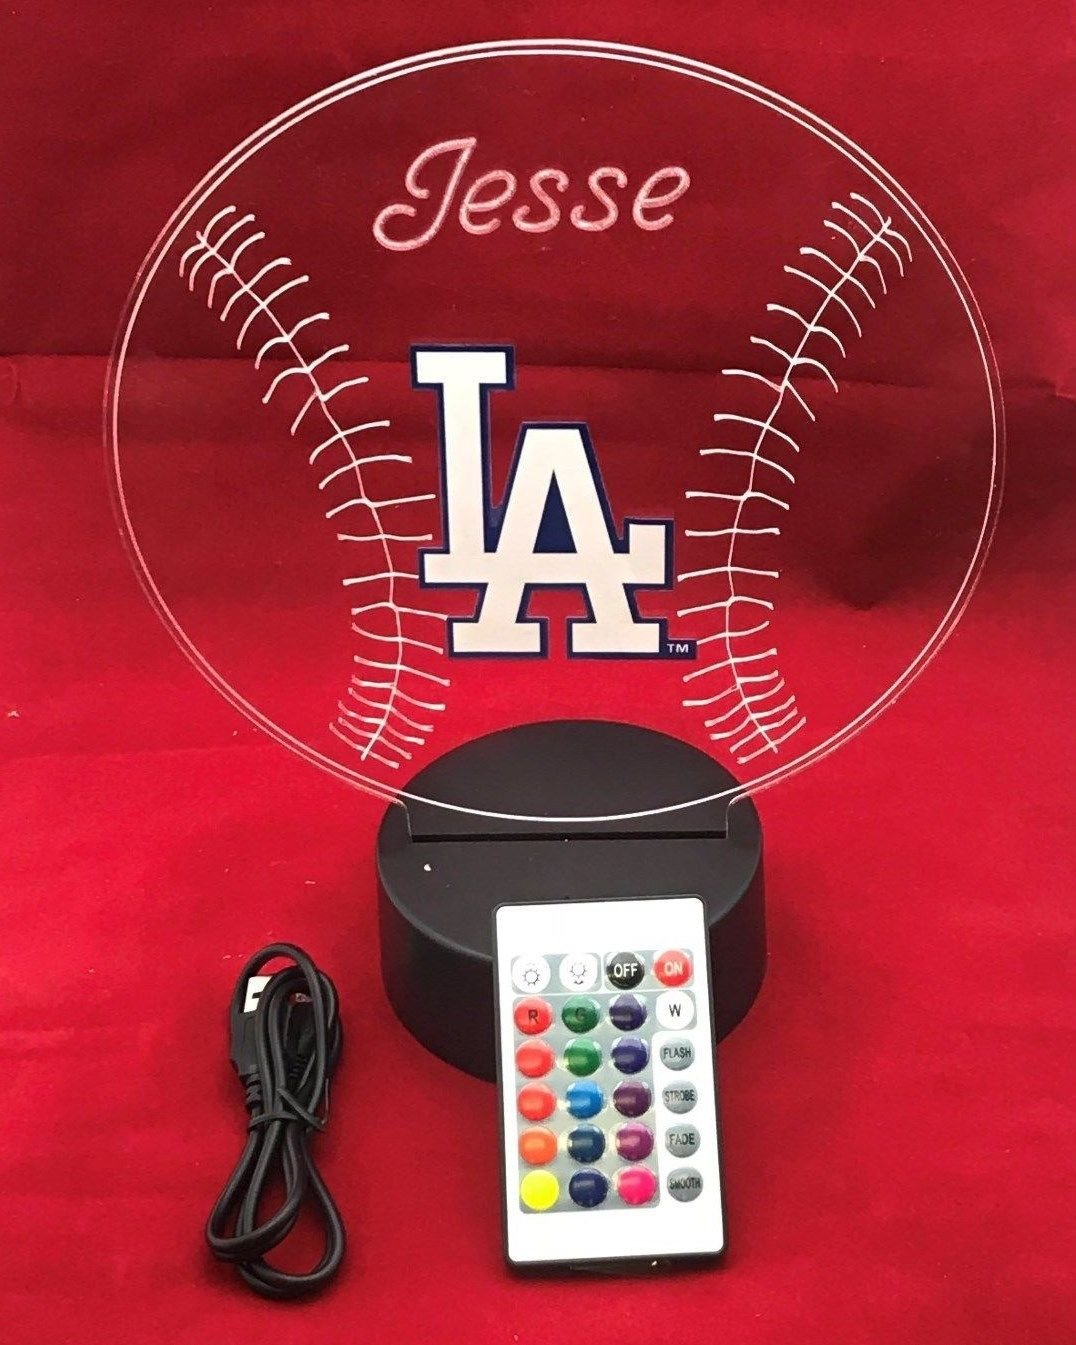 LA Dodgers MLB Light Up Beautiful Handmade Acrylic Personalized Baseball Light Up Light Lamp LED Lamp, Our Newest Feature – It s Wow, with Remote, 16 Color Options, Dimmer, Free Engraved, Great Gift